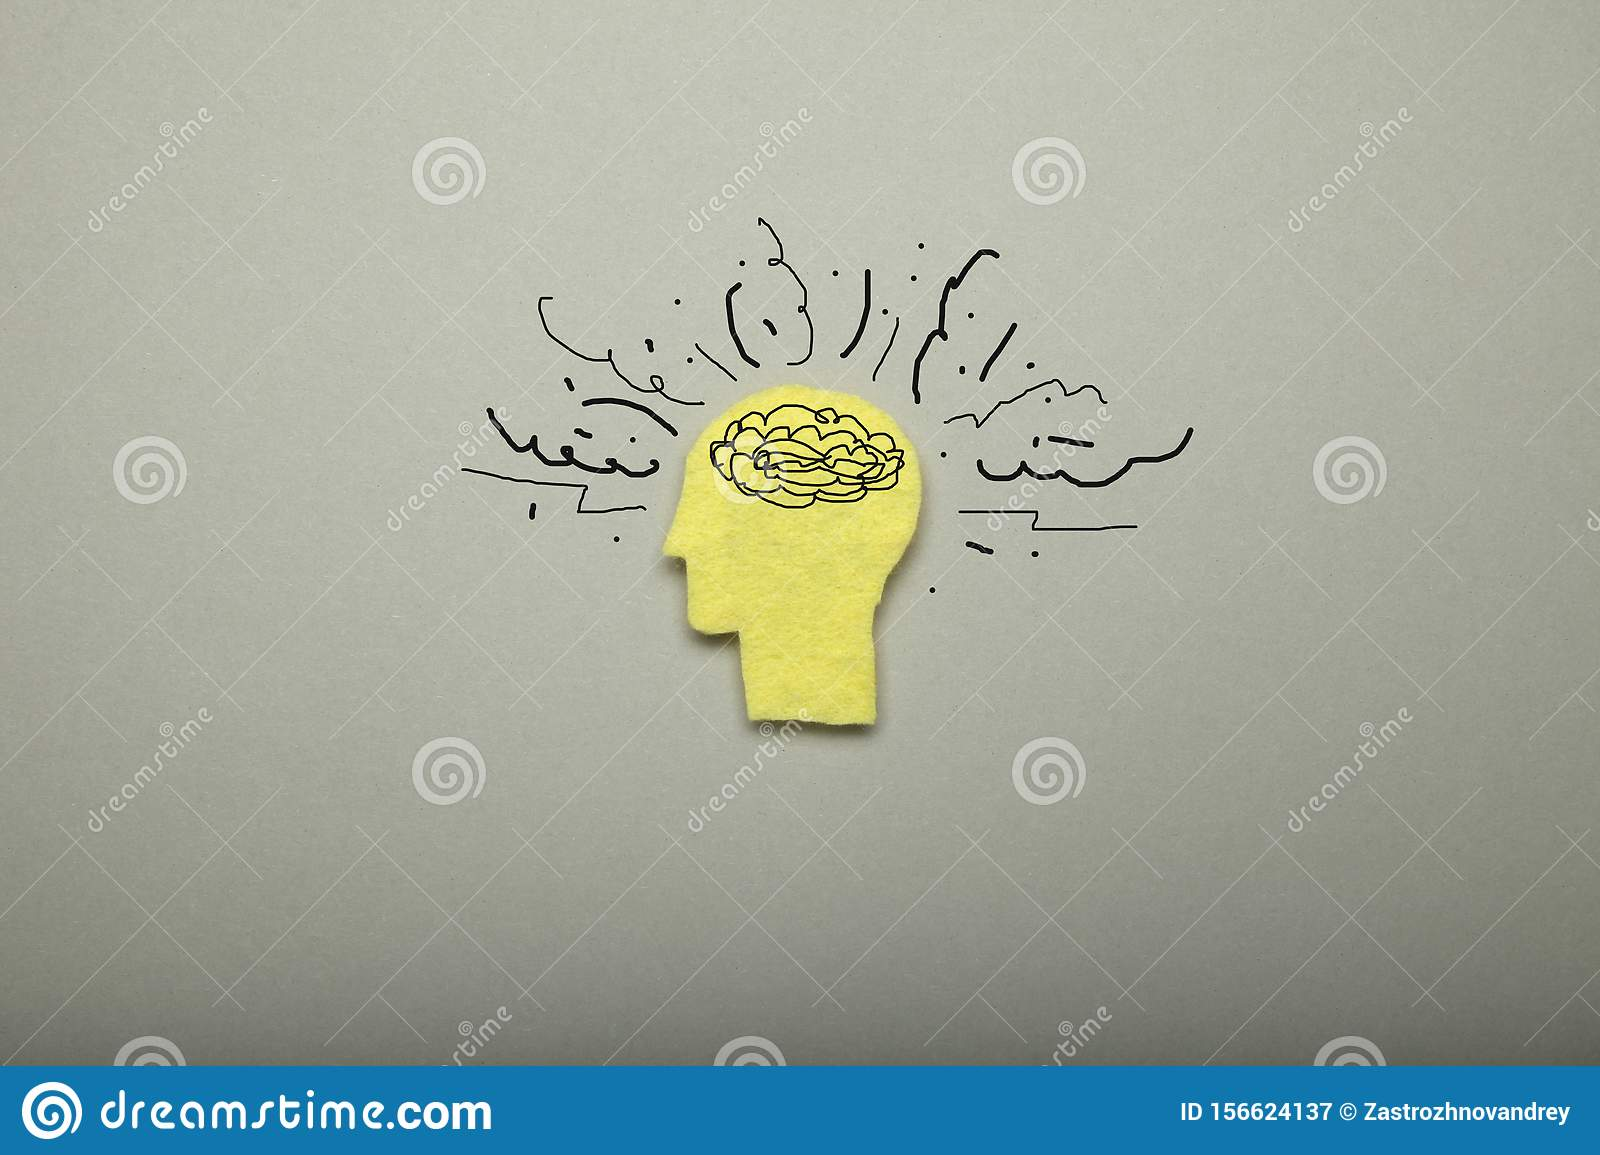 Anxiety Stress In Brain Overload In Mind Depression Adhd Ocd Stock Image Image Of Problem Clutter